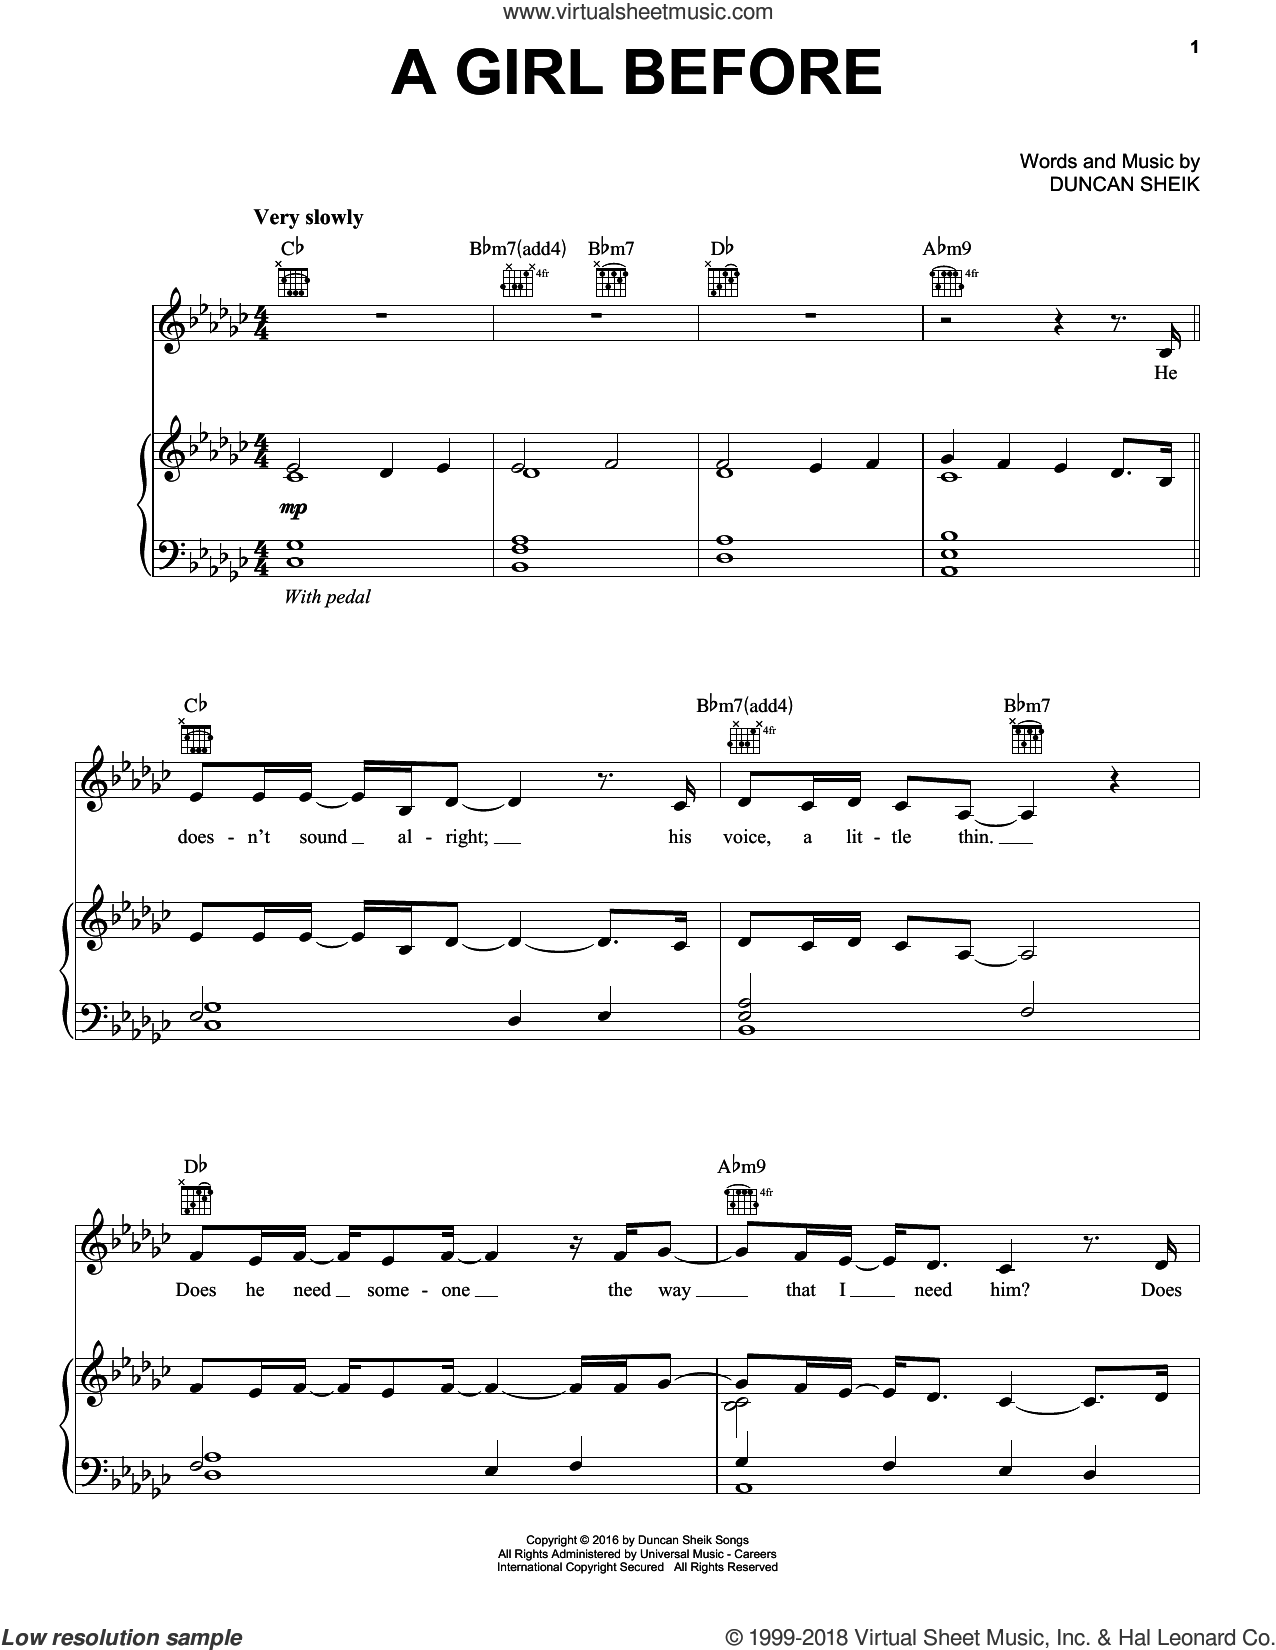 A Girl Before sheet music for voice, piano or guitar by Duncan Sheik, intermediate skill level